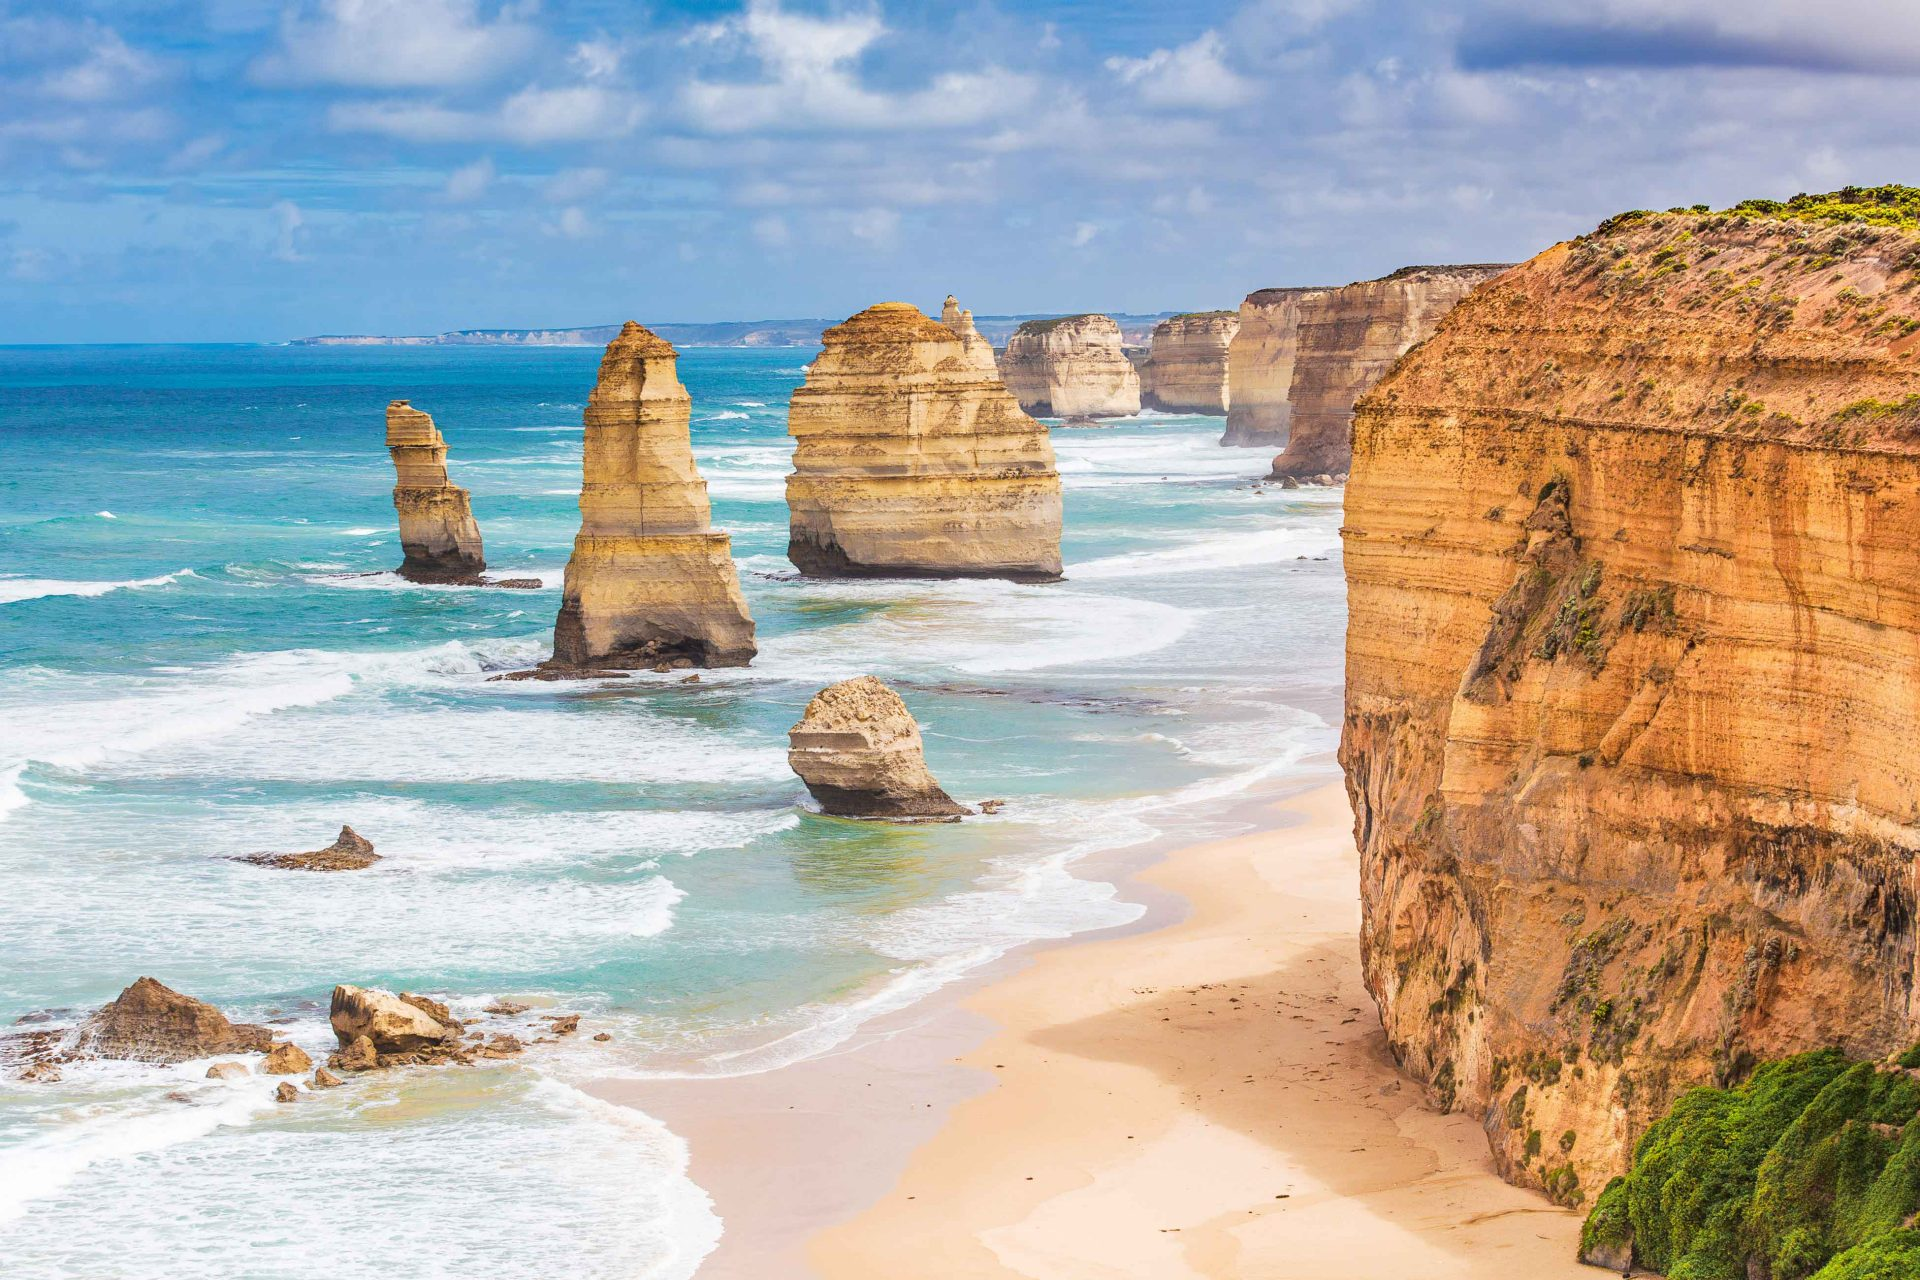 Travel to Australia - The 12 Apostles